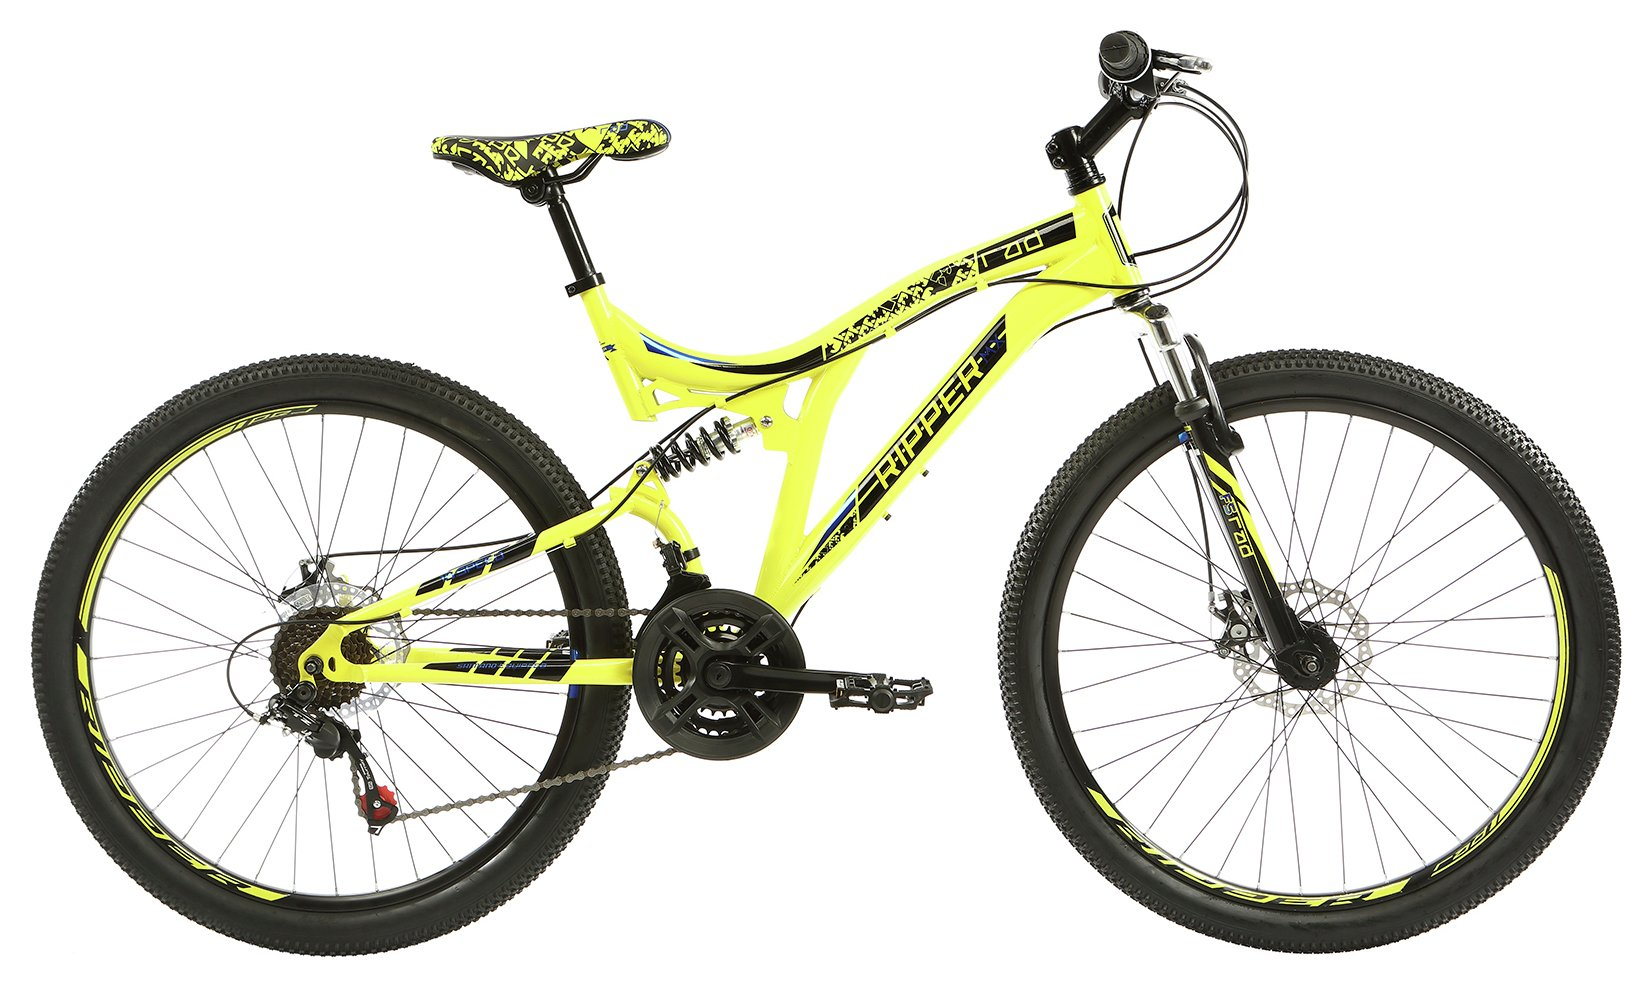 RAD Ripper MX 18 Inch Yellow Mountain Bike